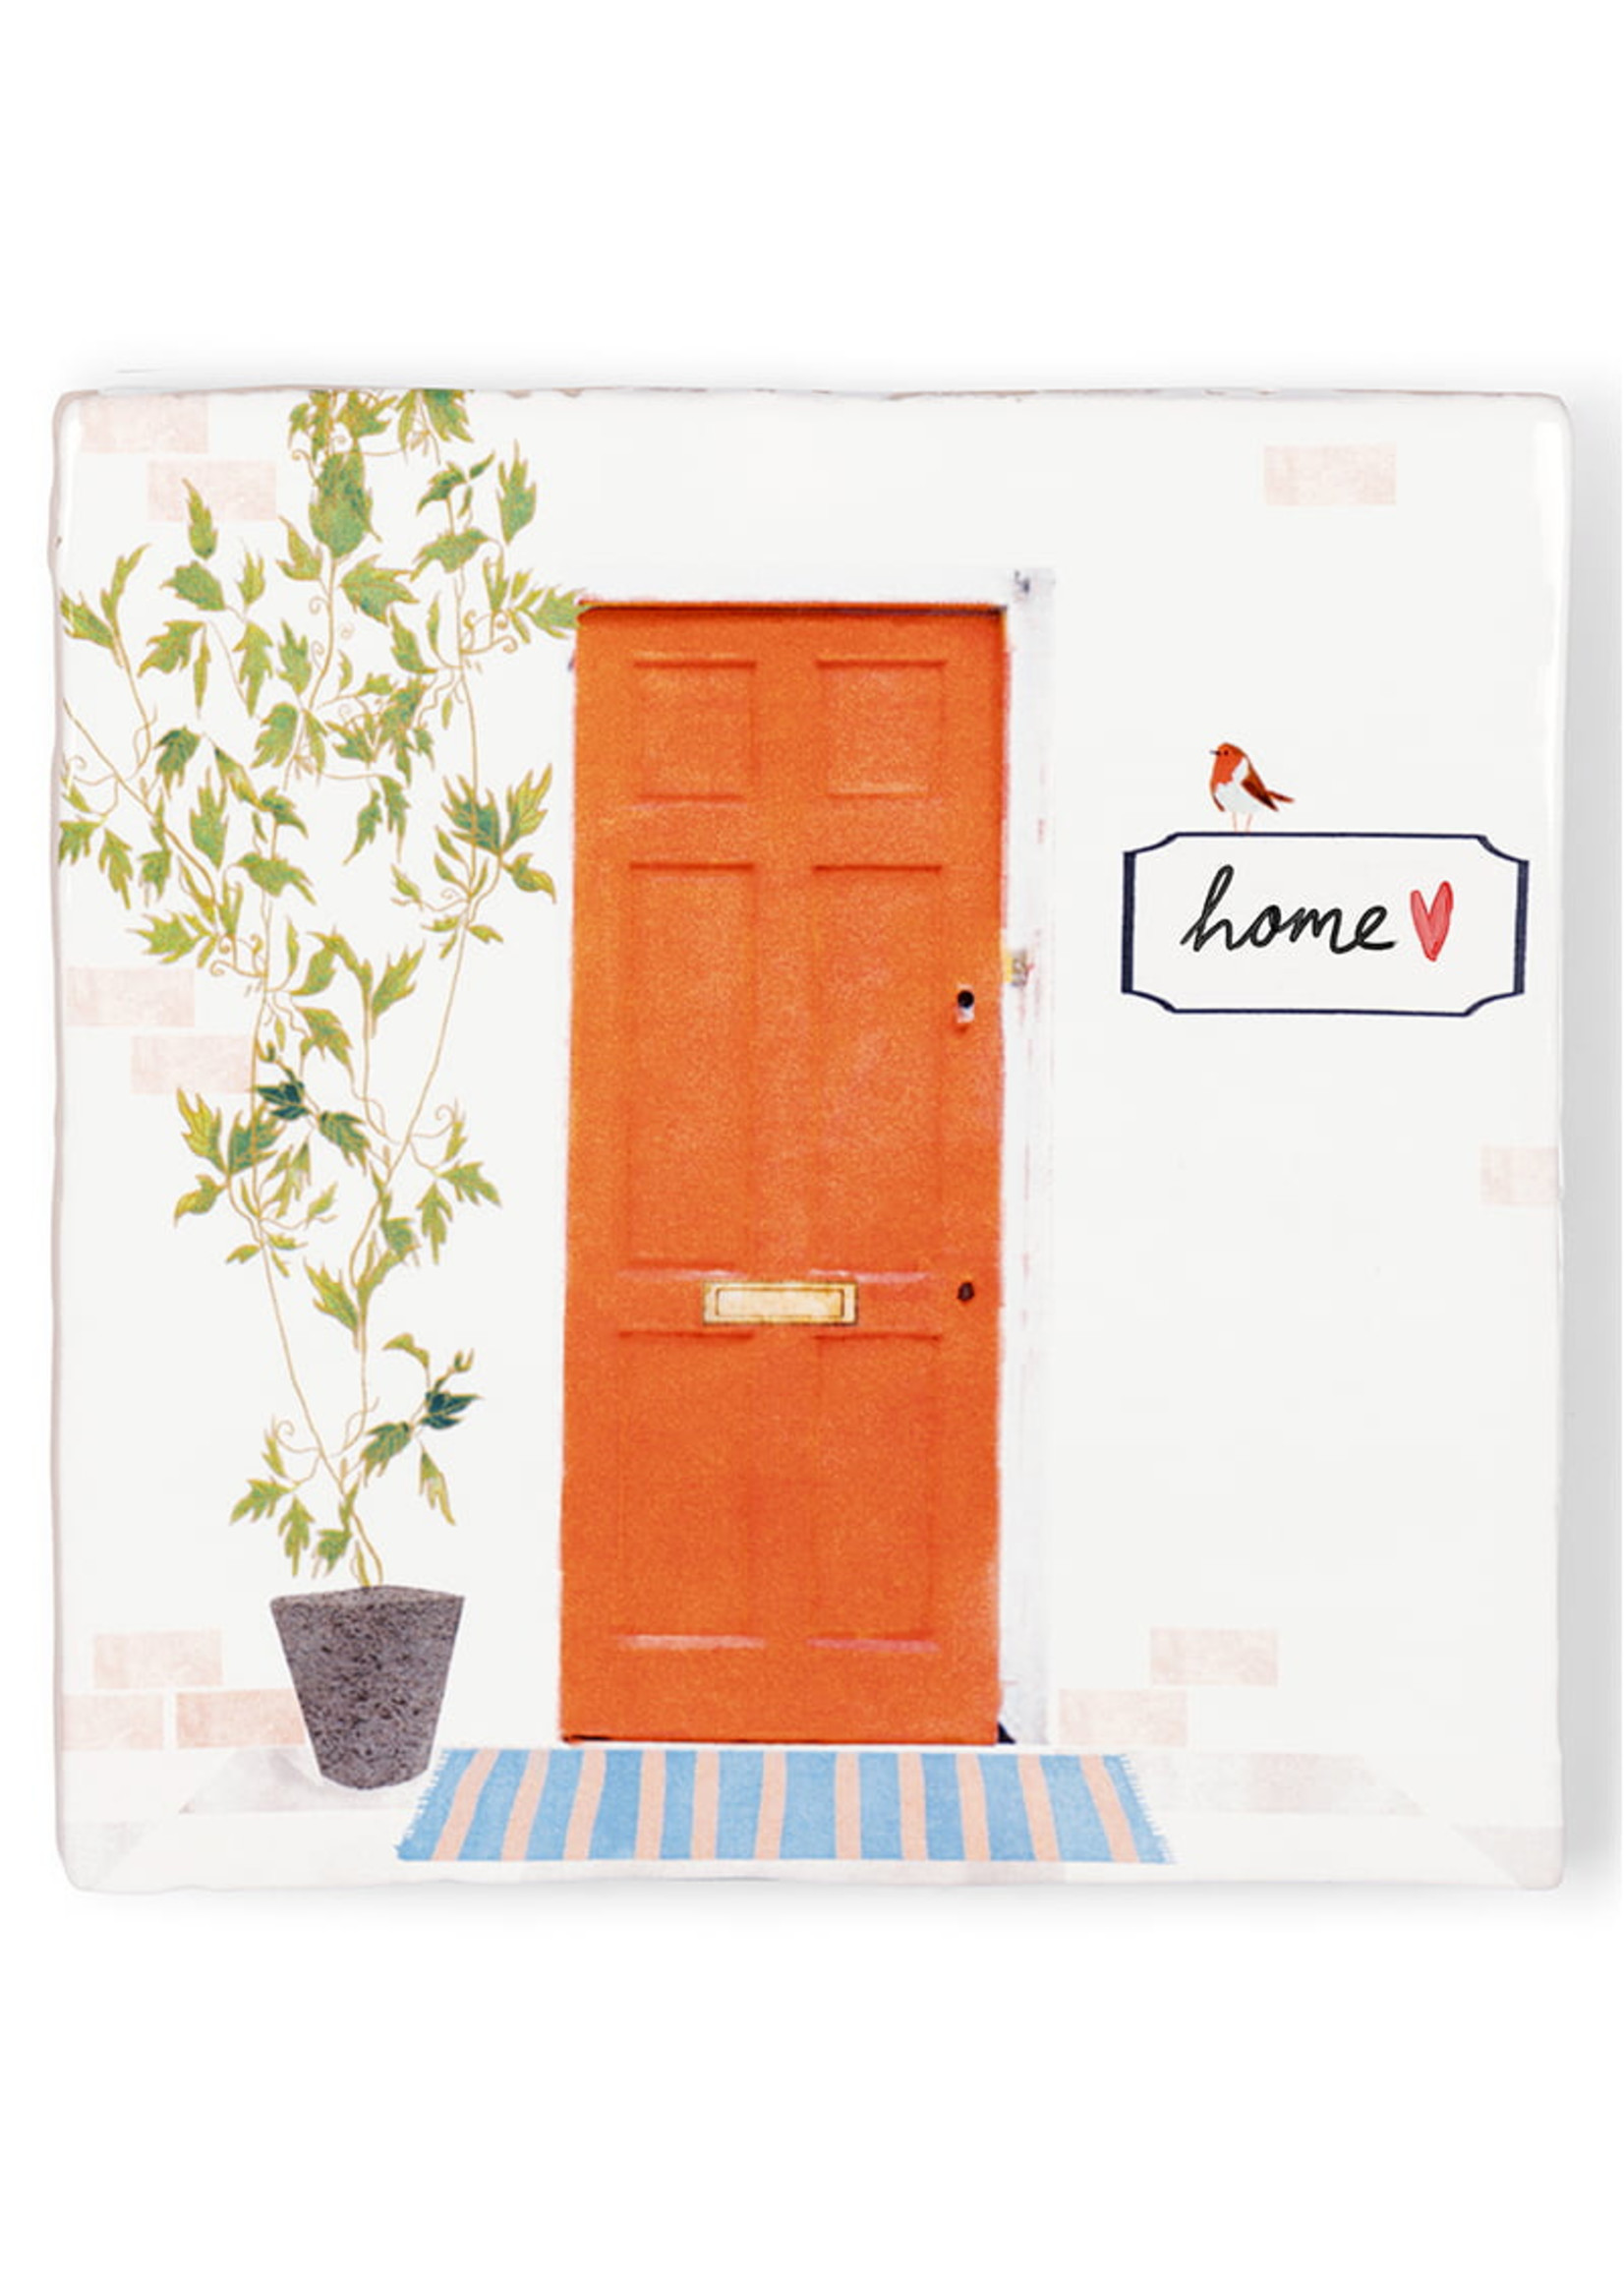 Storytiles Storytiles Knock knock who's there? 13x13cm